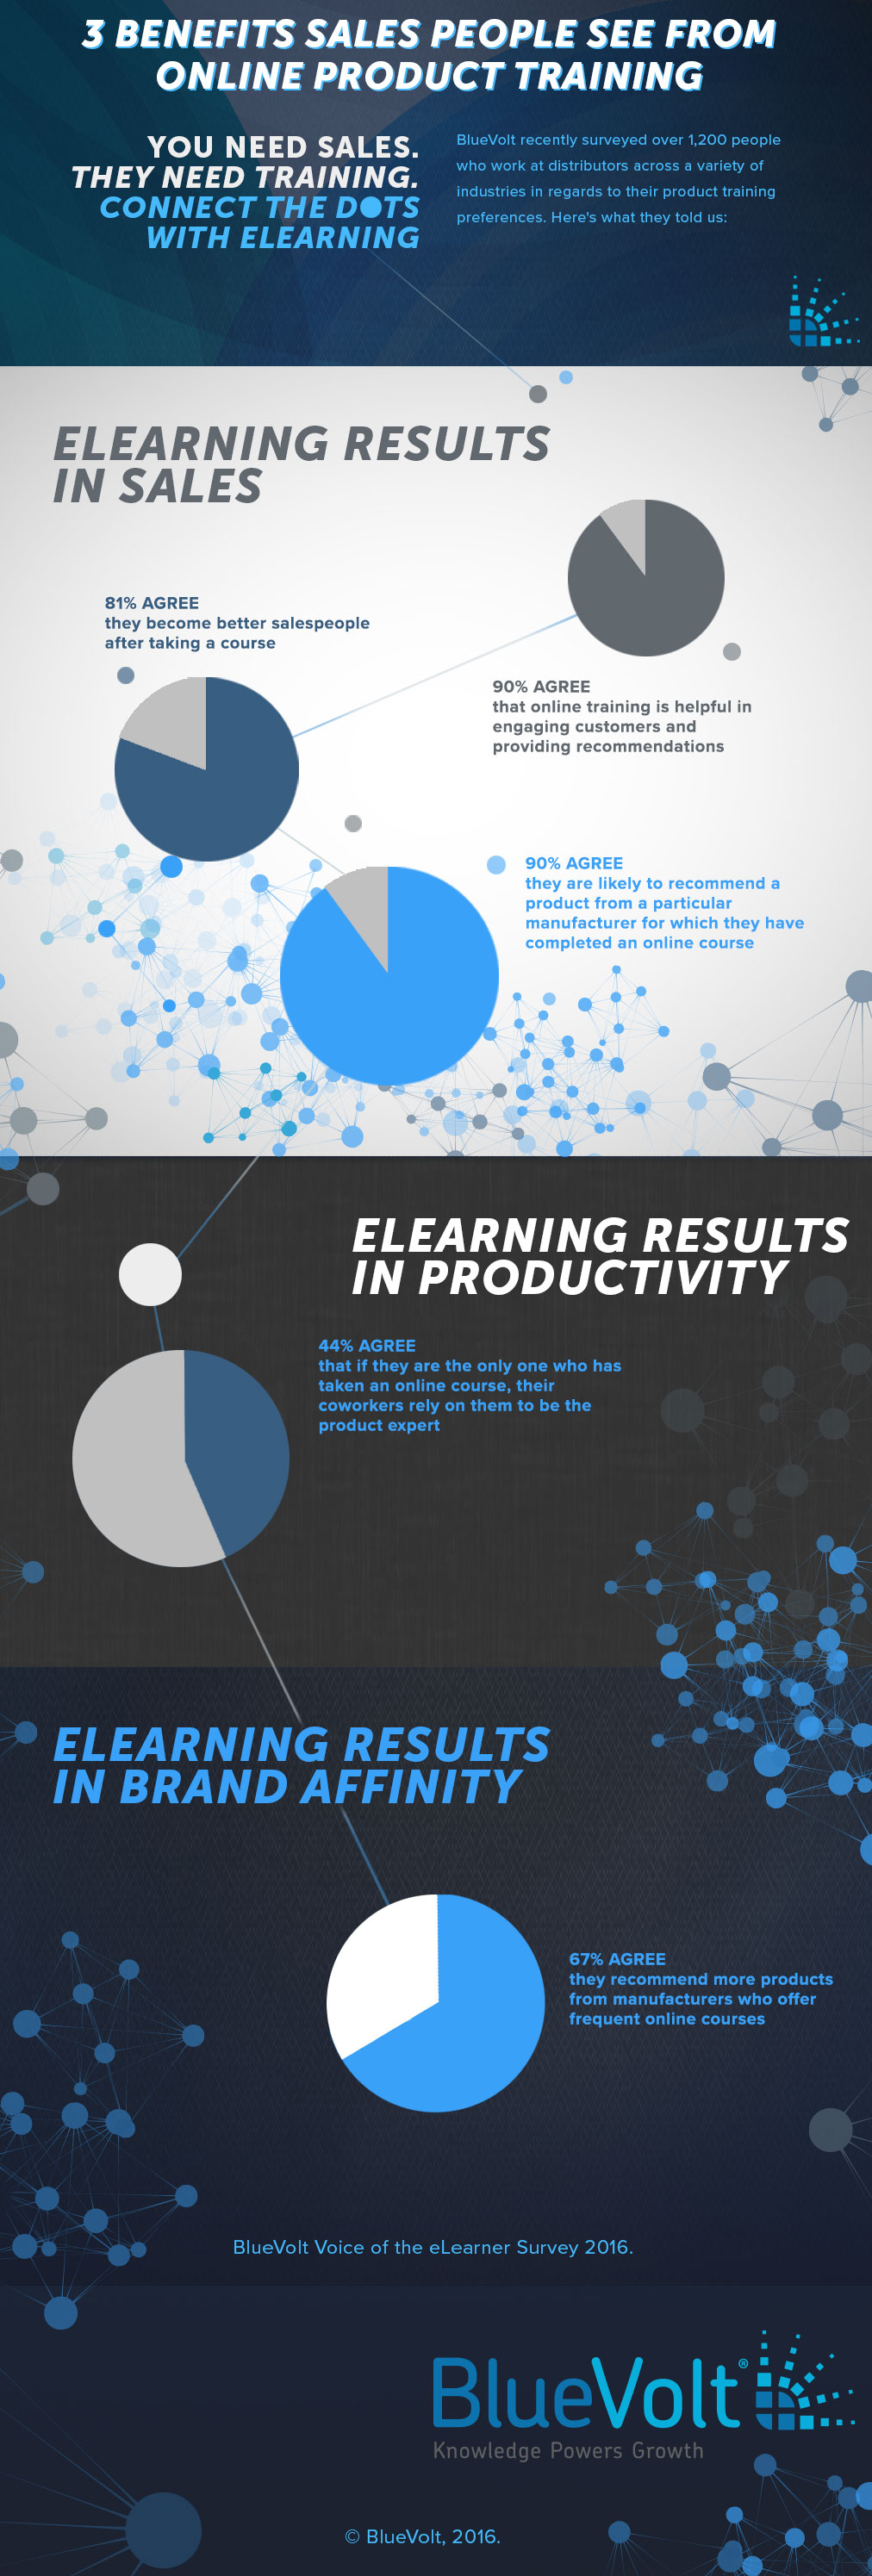 3 Benefits to Online Product Training Infographic by BlueVolt